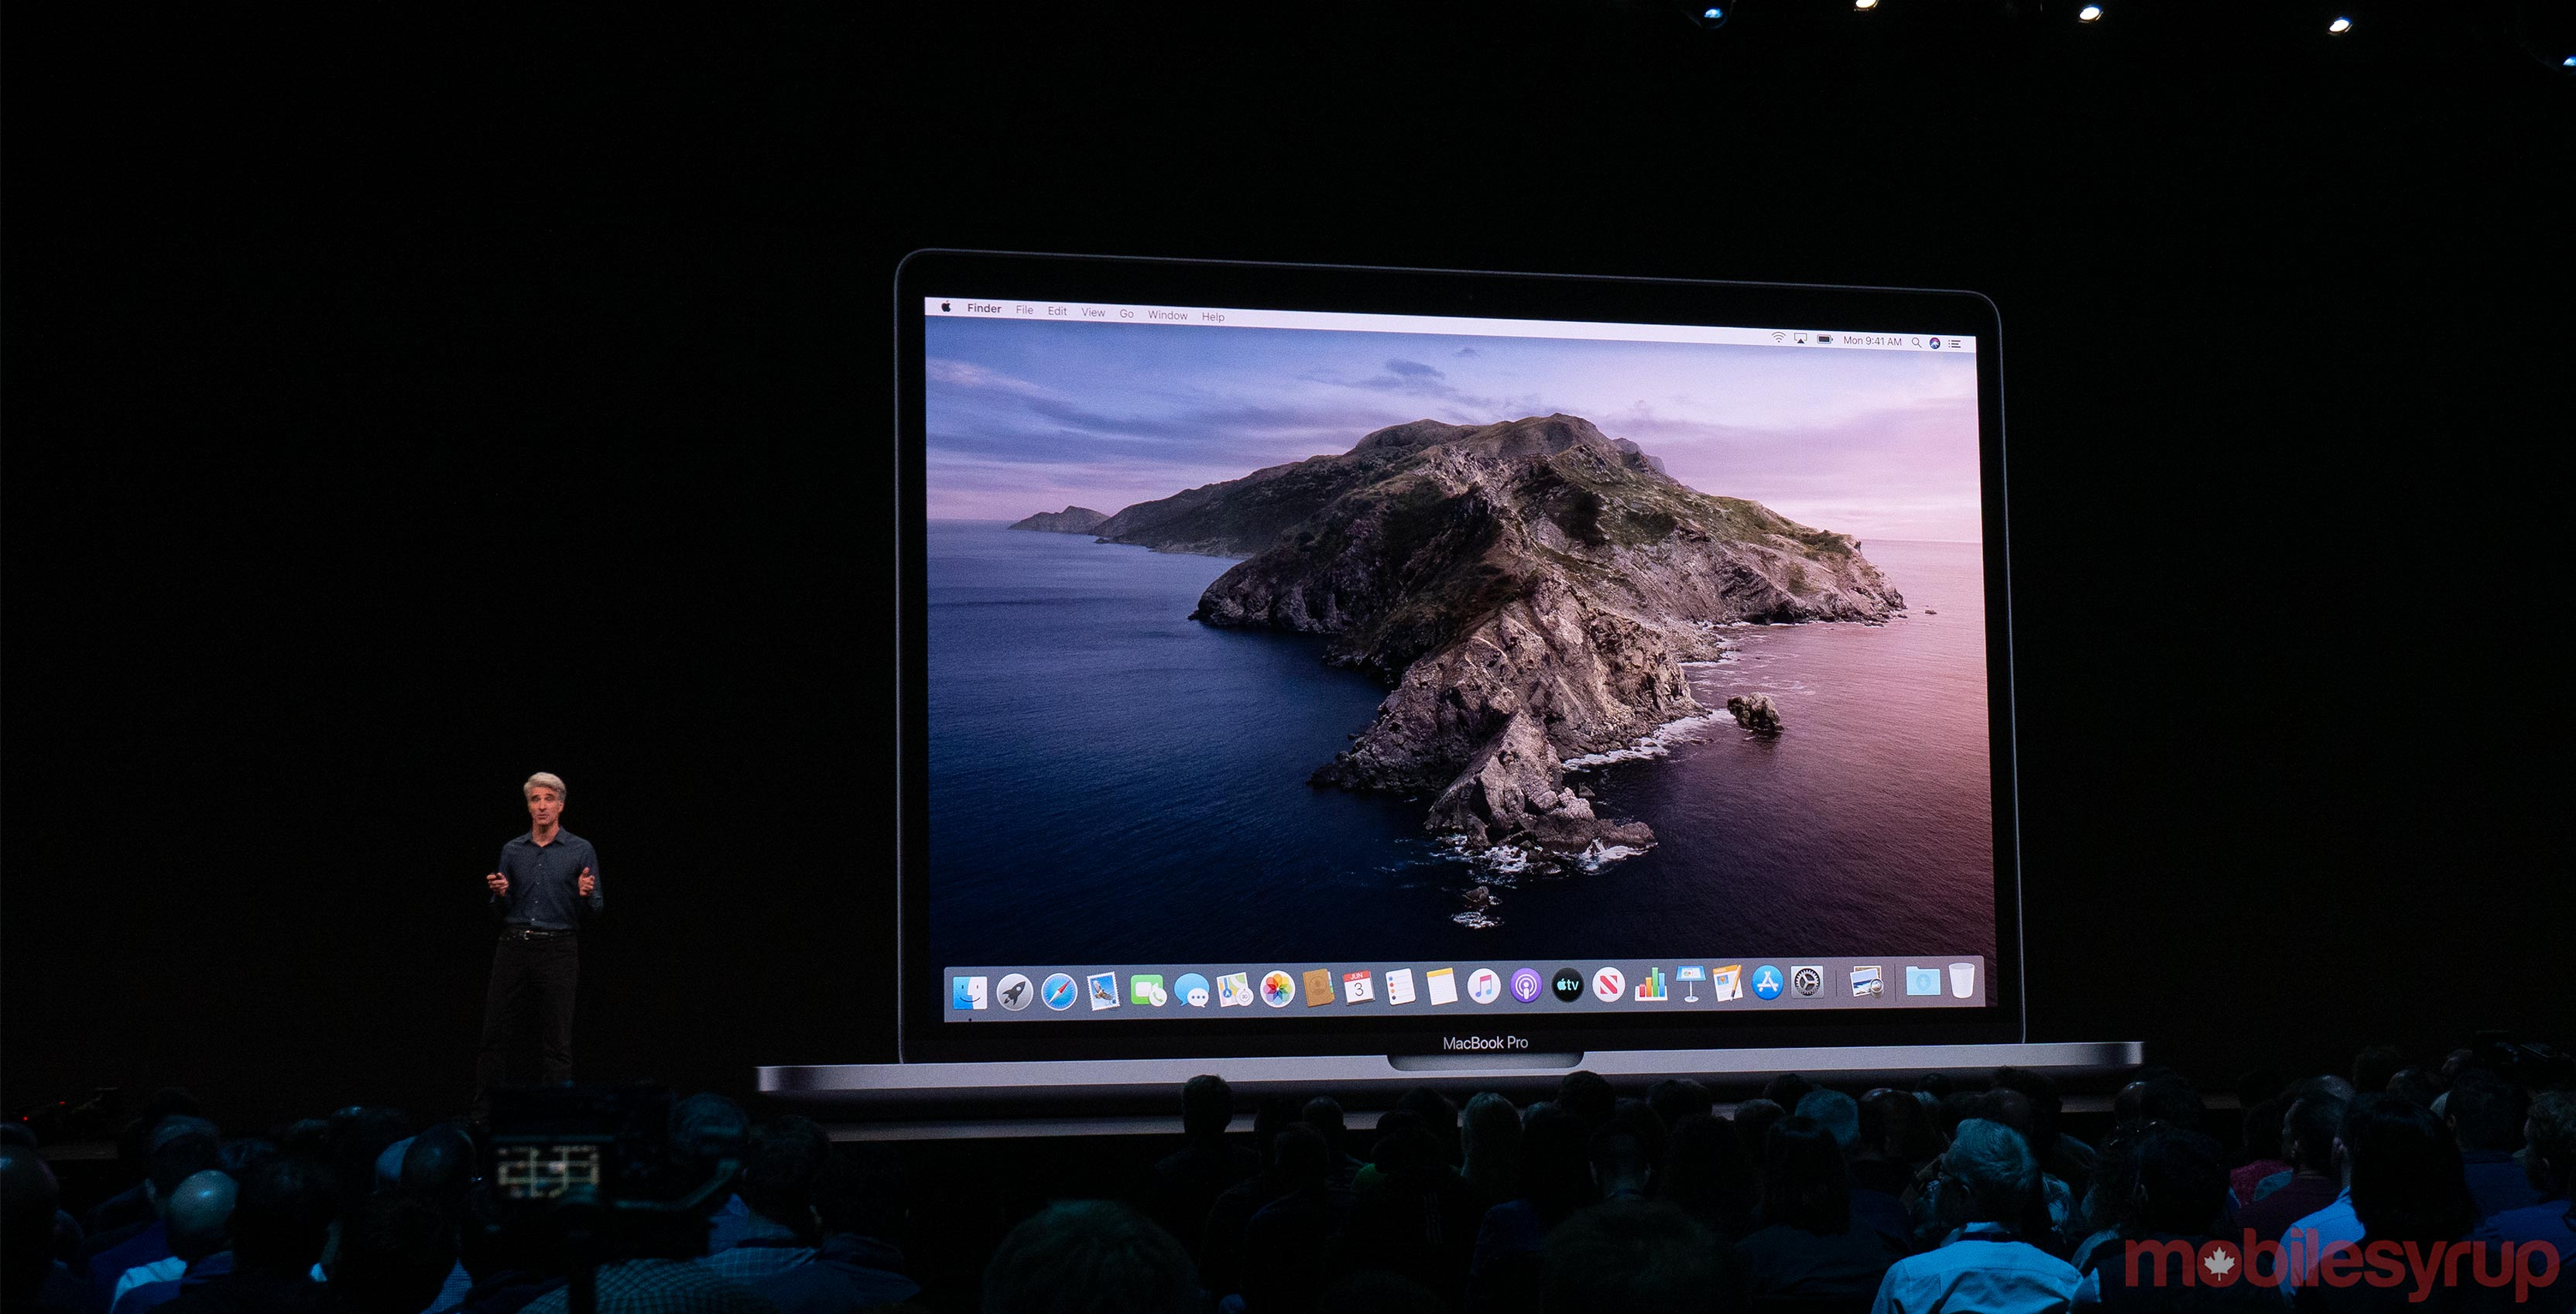 macOS Catalina's public beta is now available to download